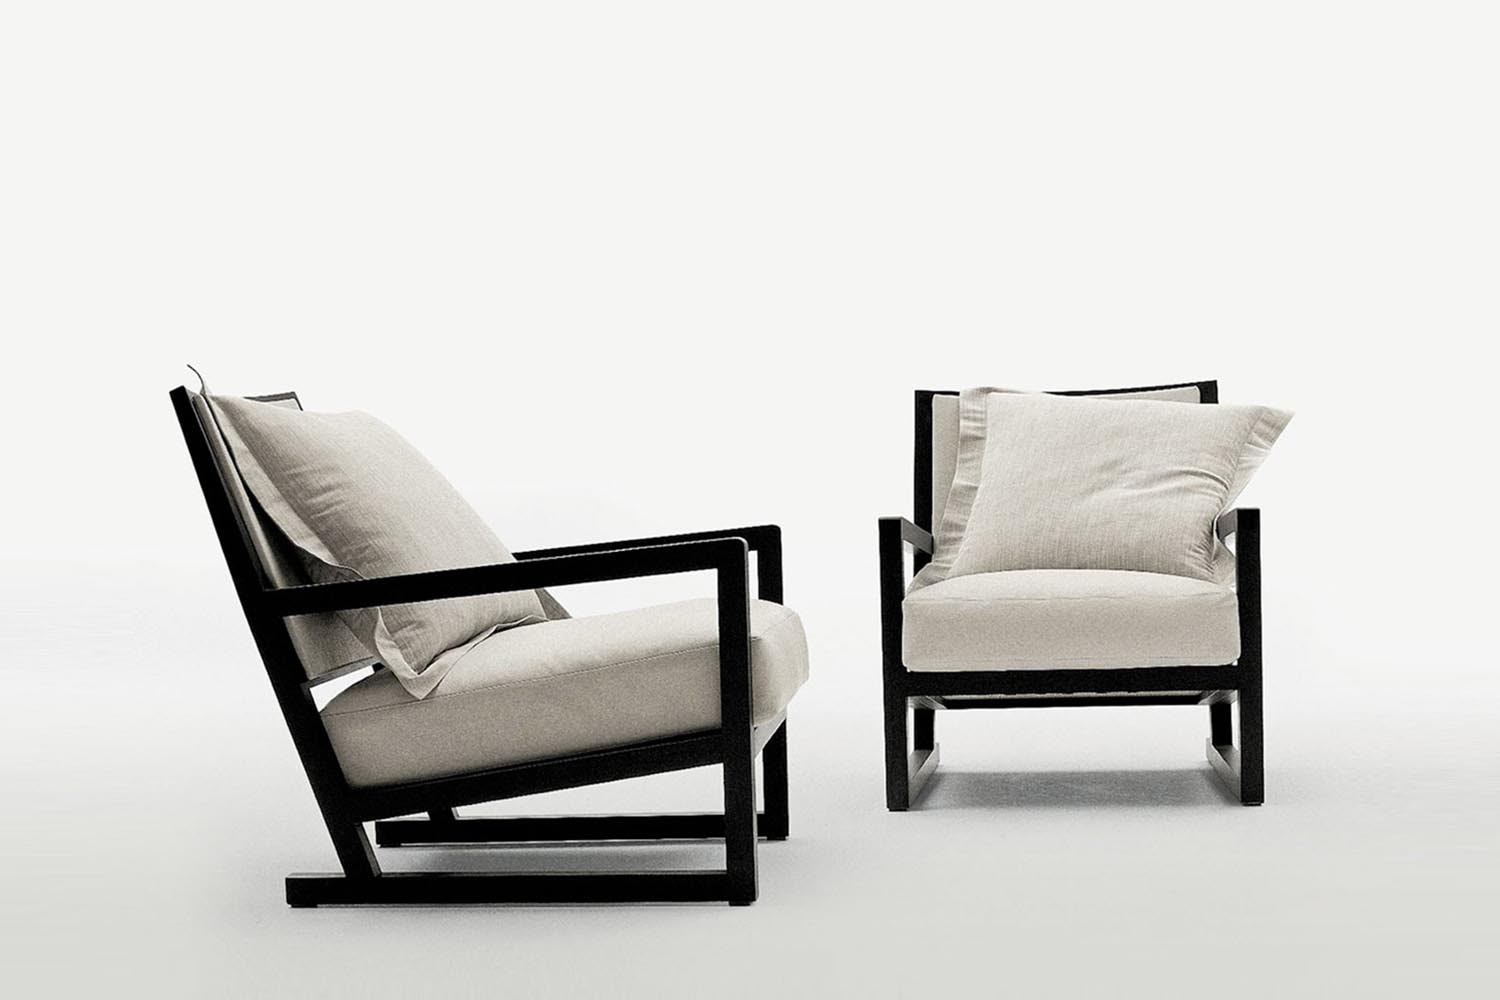 Clio Armchair by Antonio Citterio for Maxalto